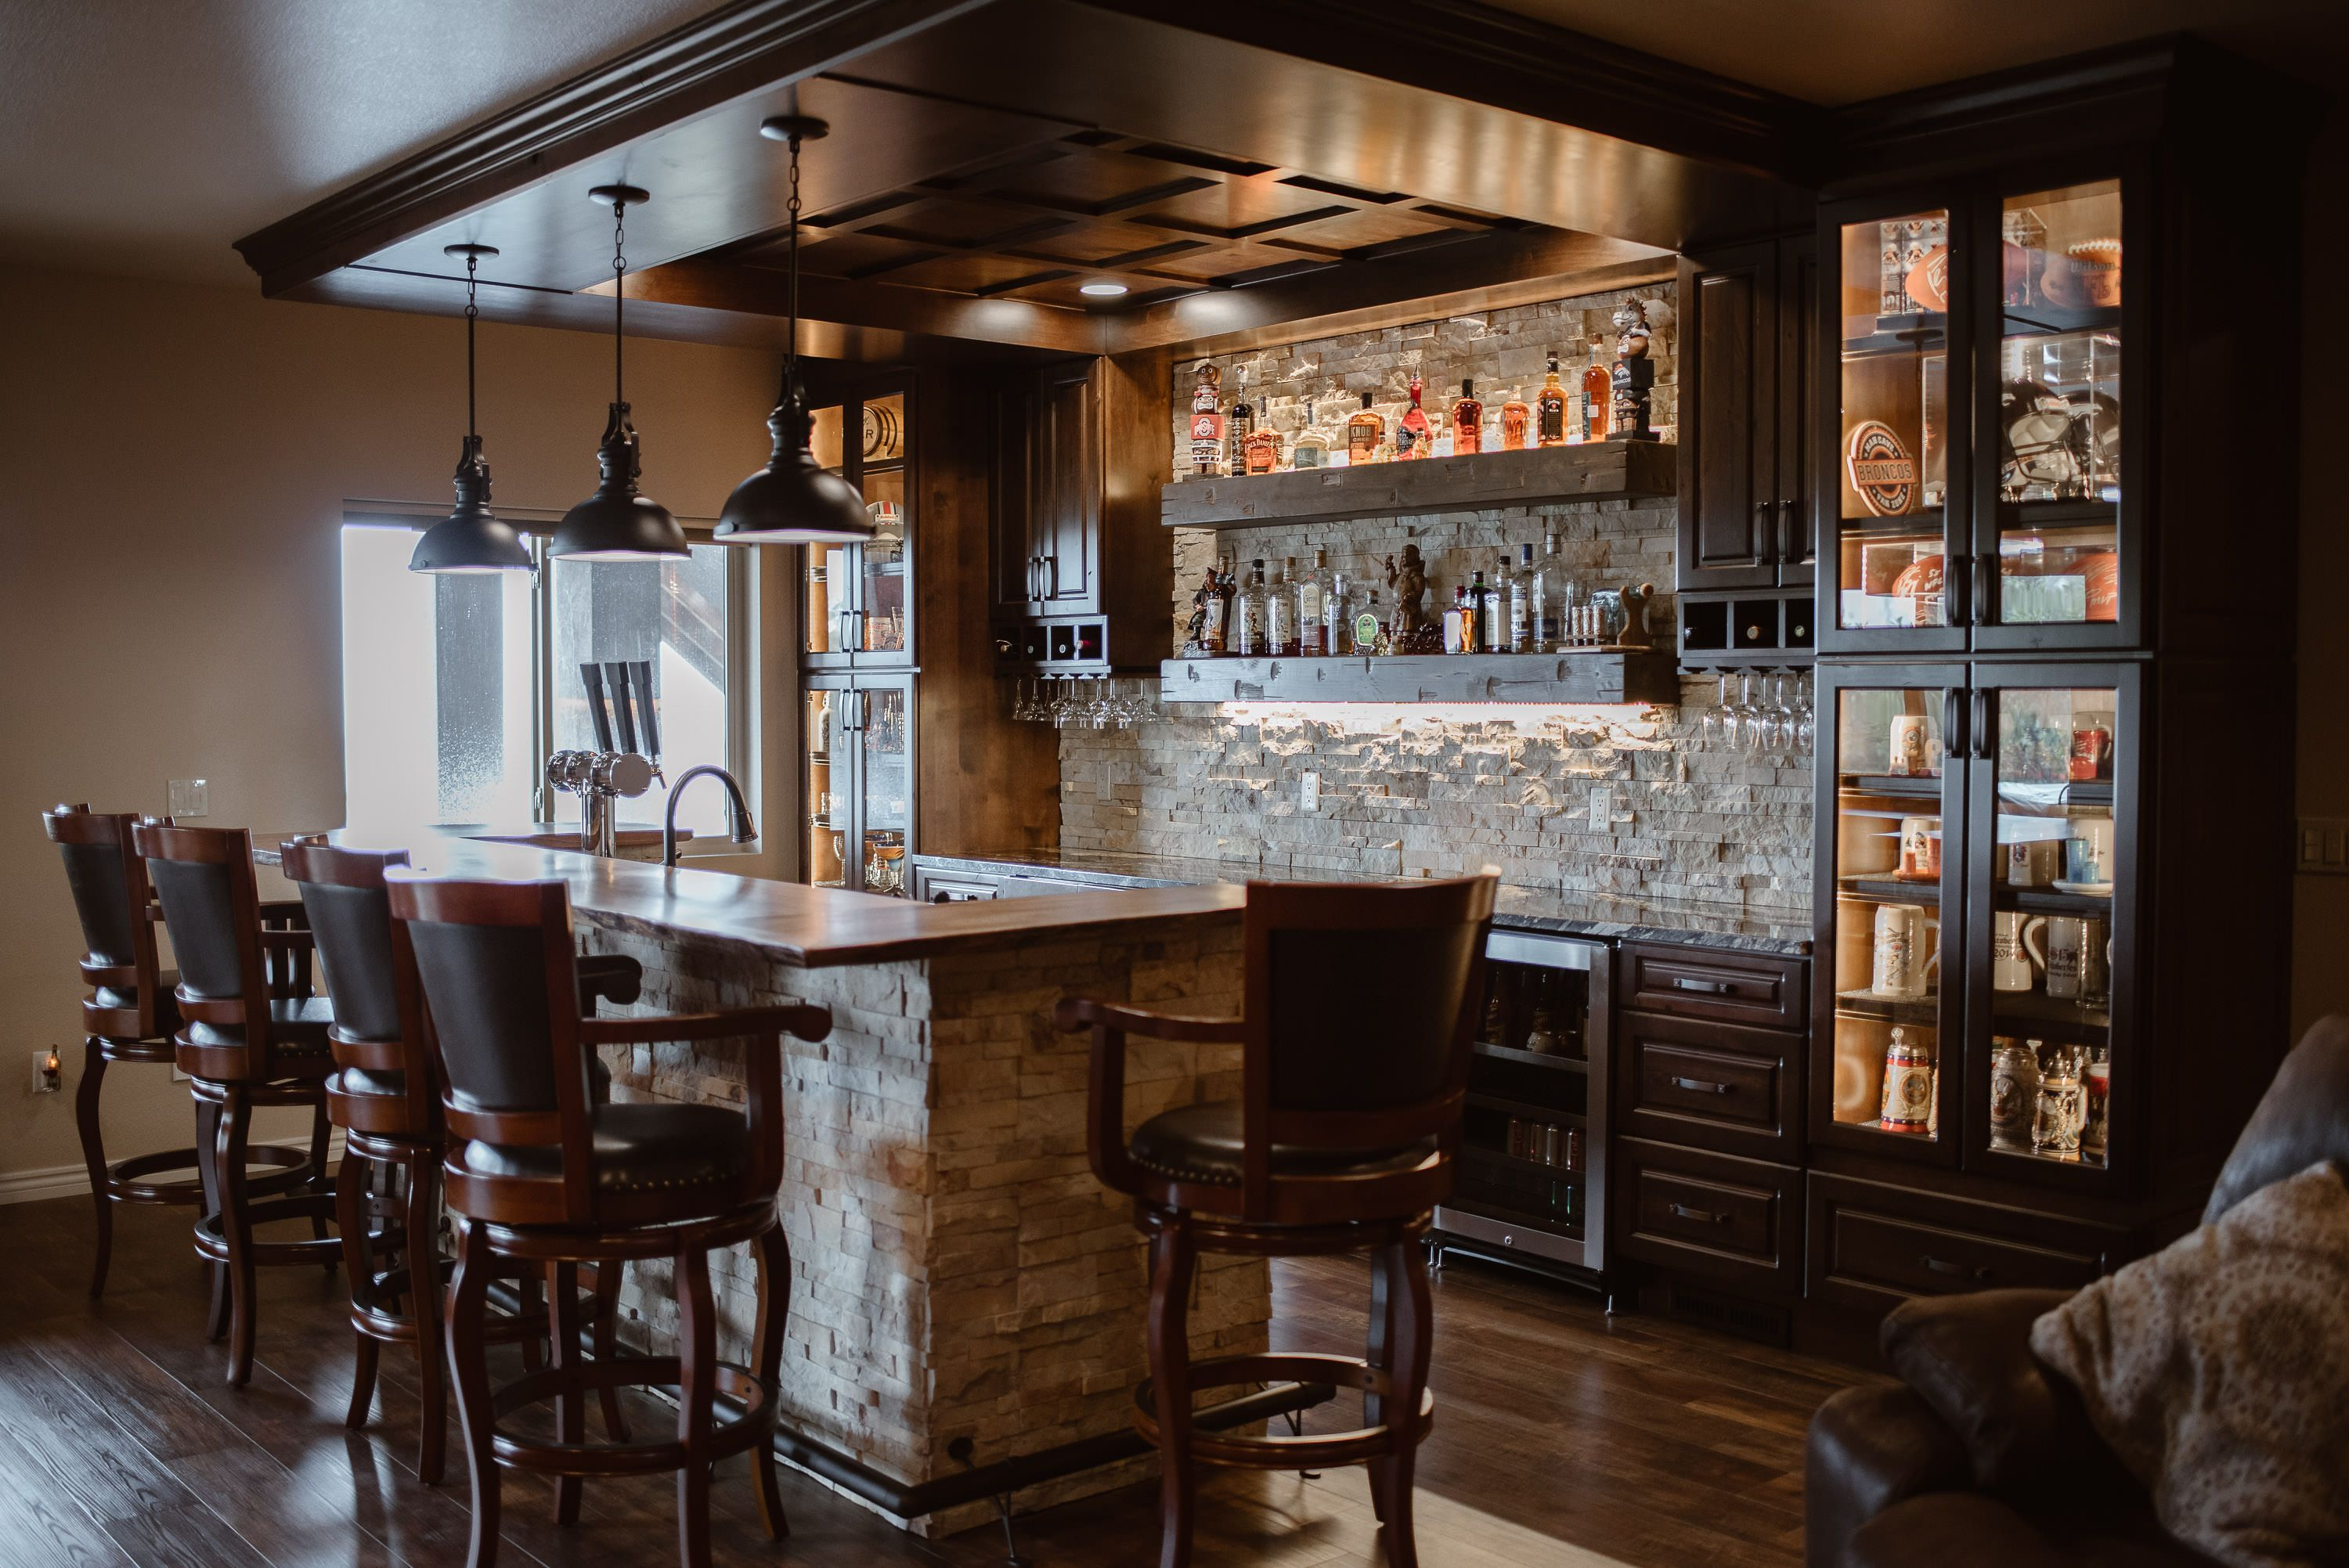 Pin by Jessica Daniels on Wet Bar- Jessica Daniels Homes (With images) | Wet bar designs, Wet ...